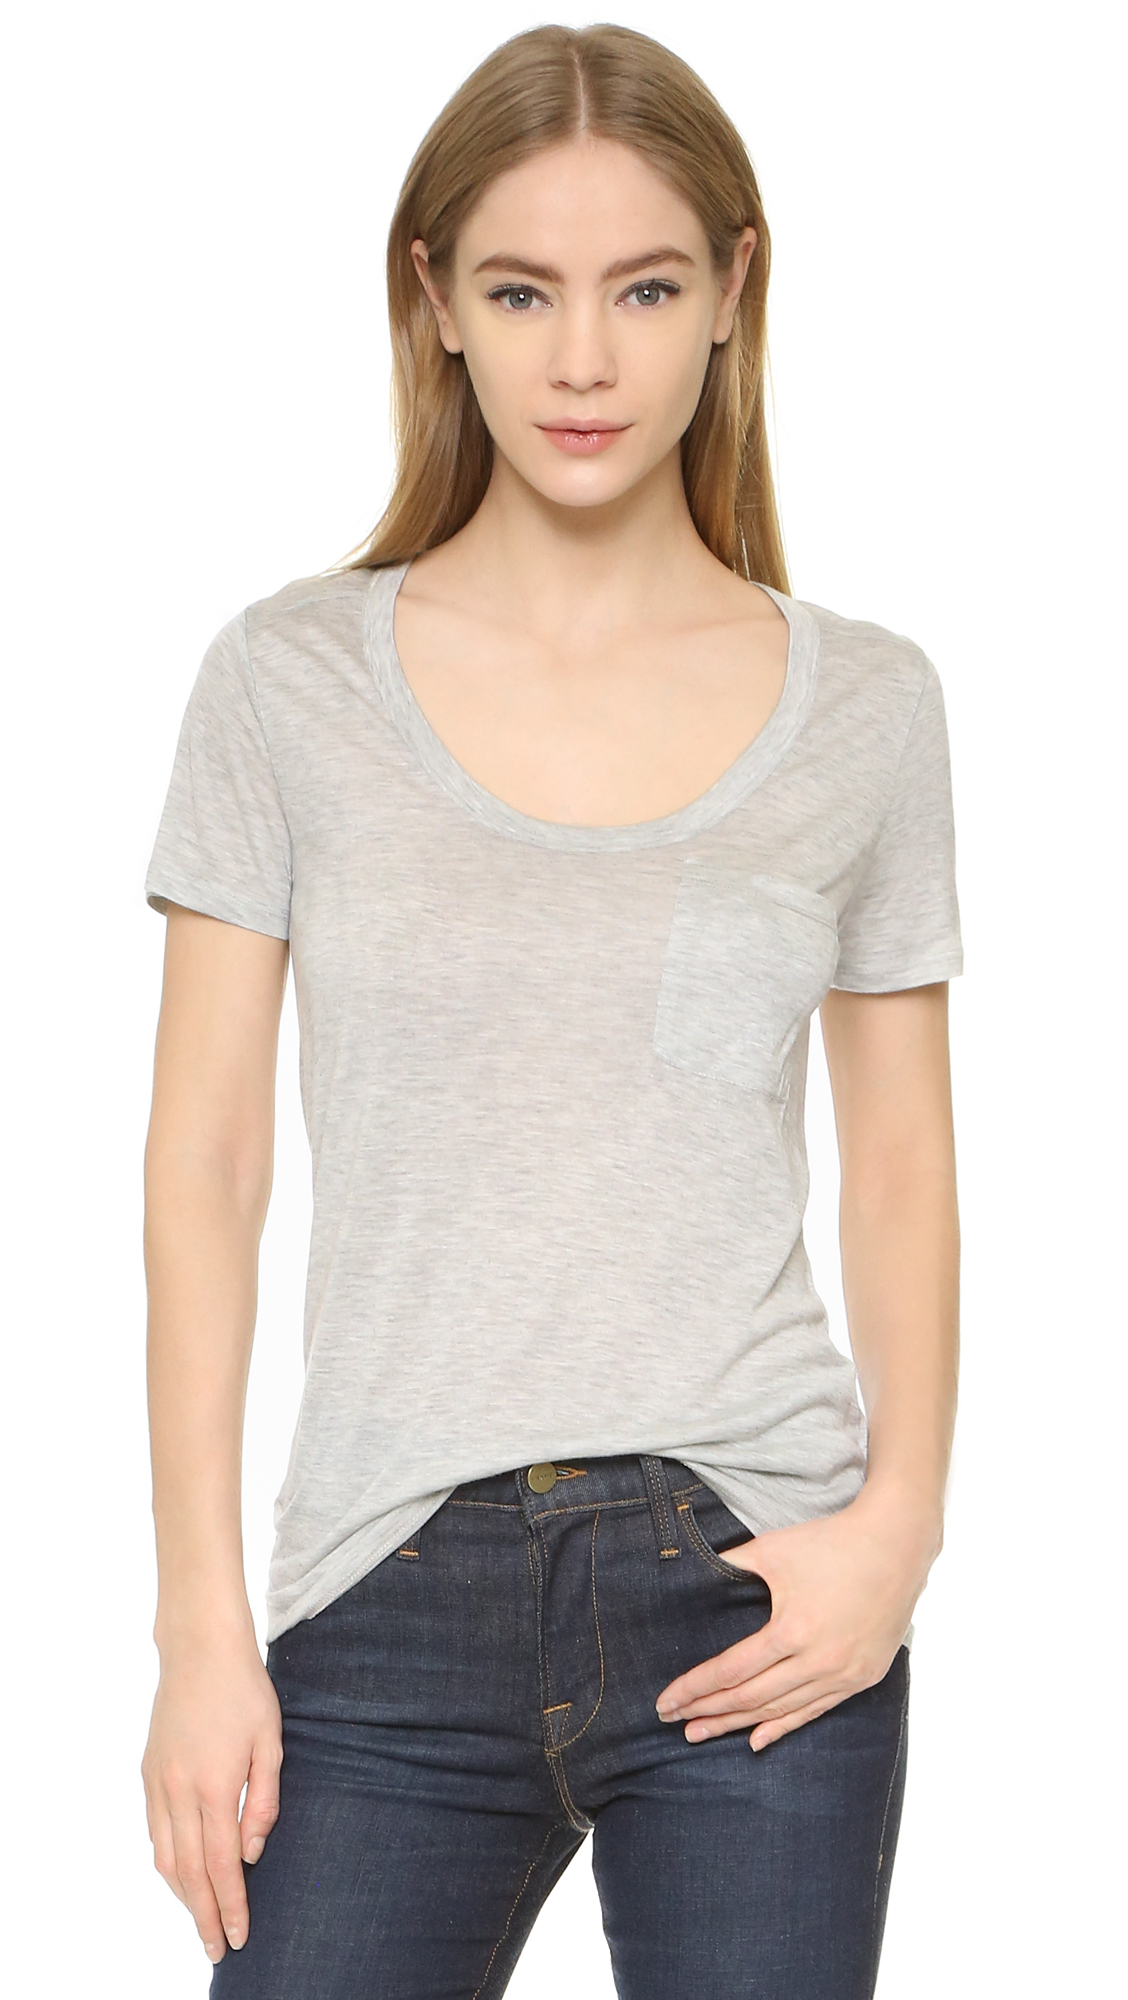 Club Monaco Sunny Tee - Light Heather Grey